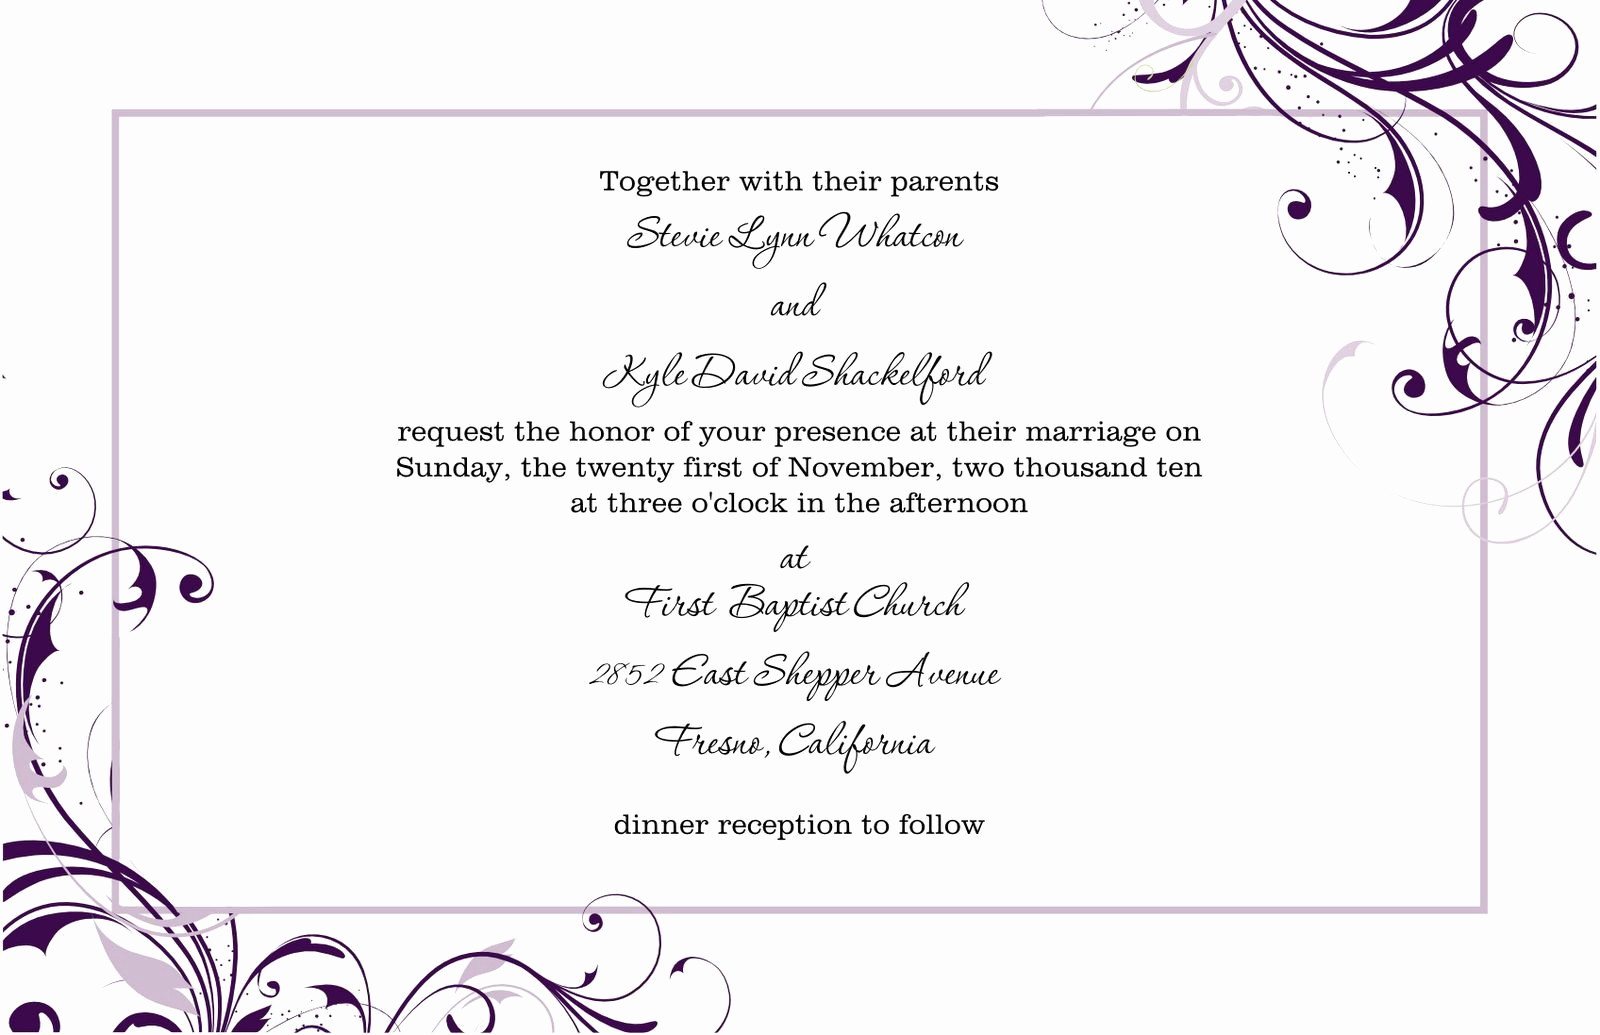 Free Invitation Templates for Word Beautiful Free Blank Wedding Invitation Templates for Microsoft Word